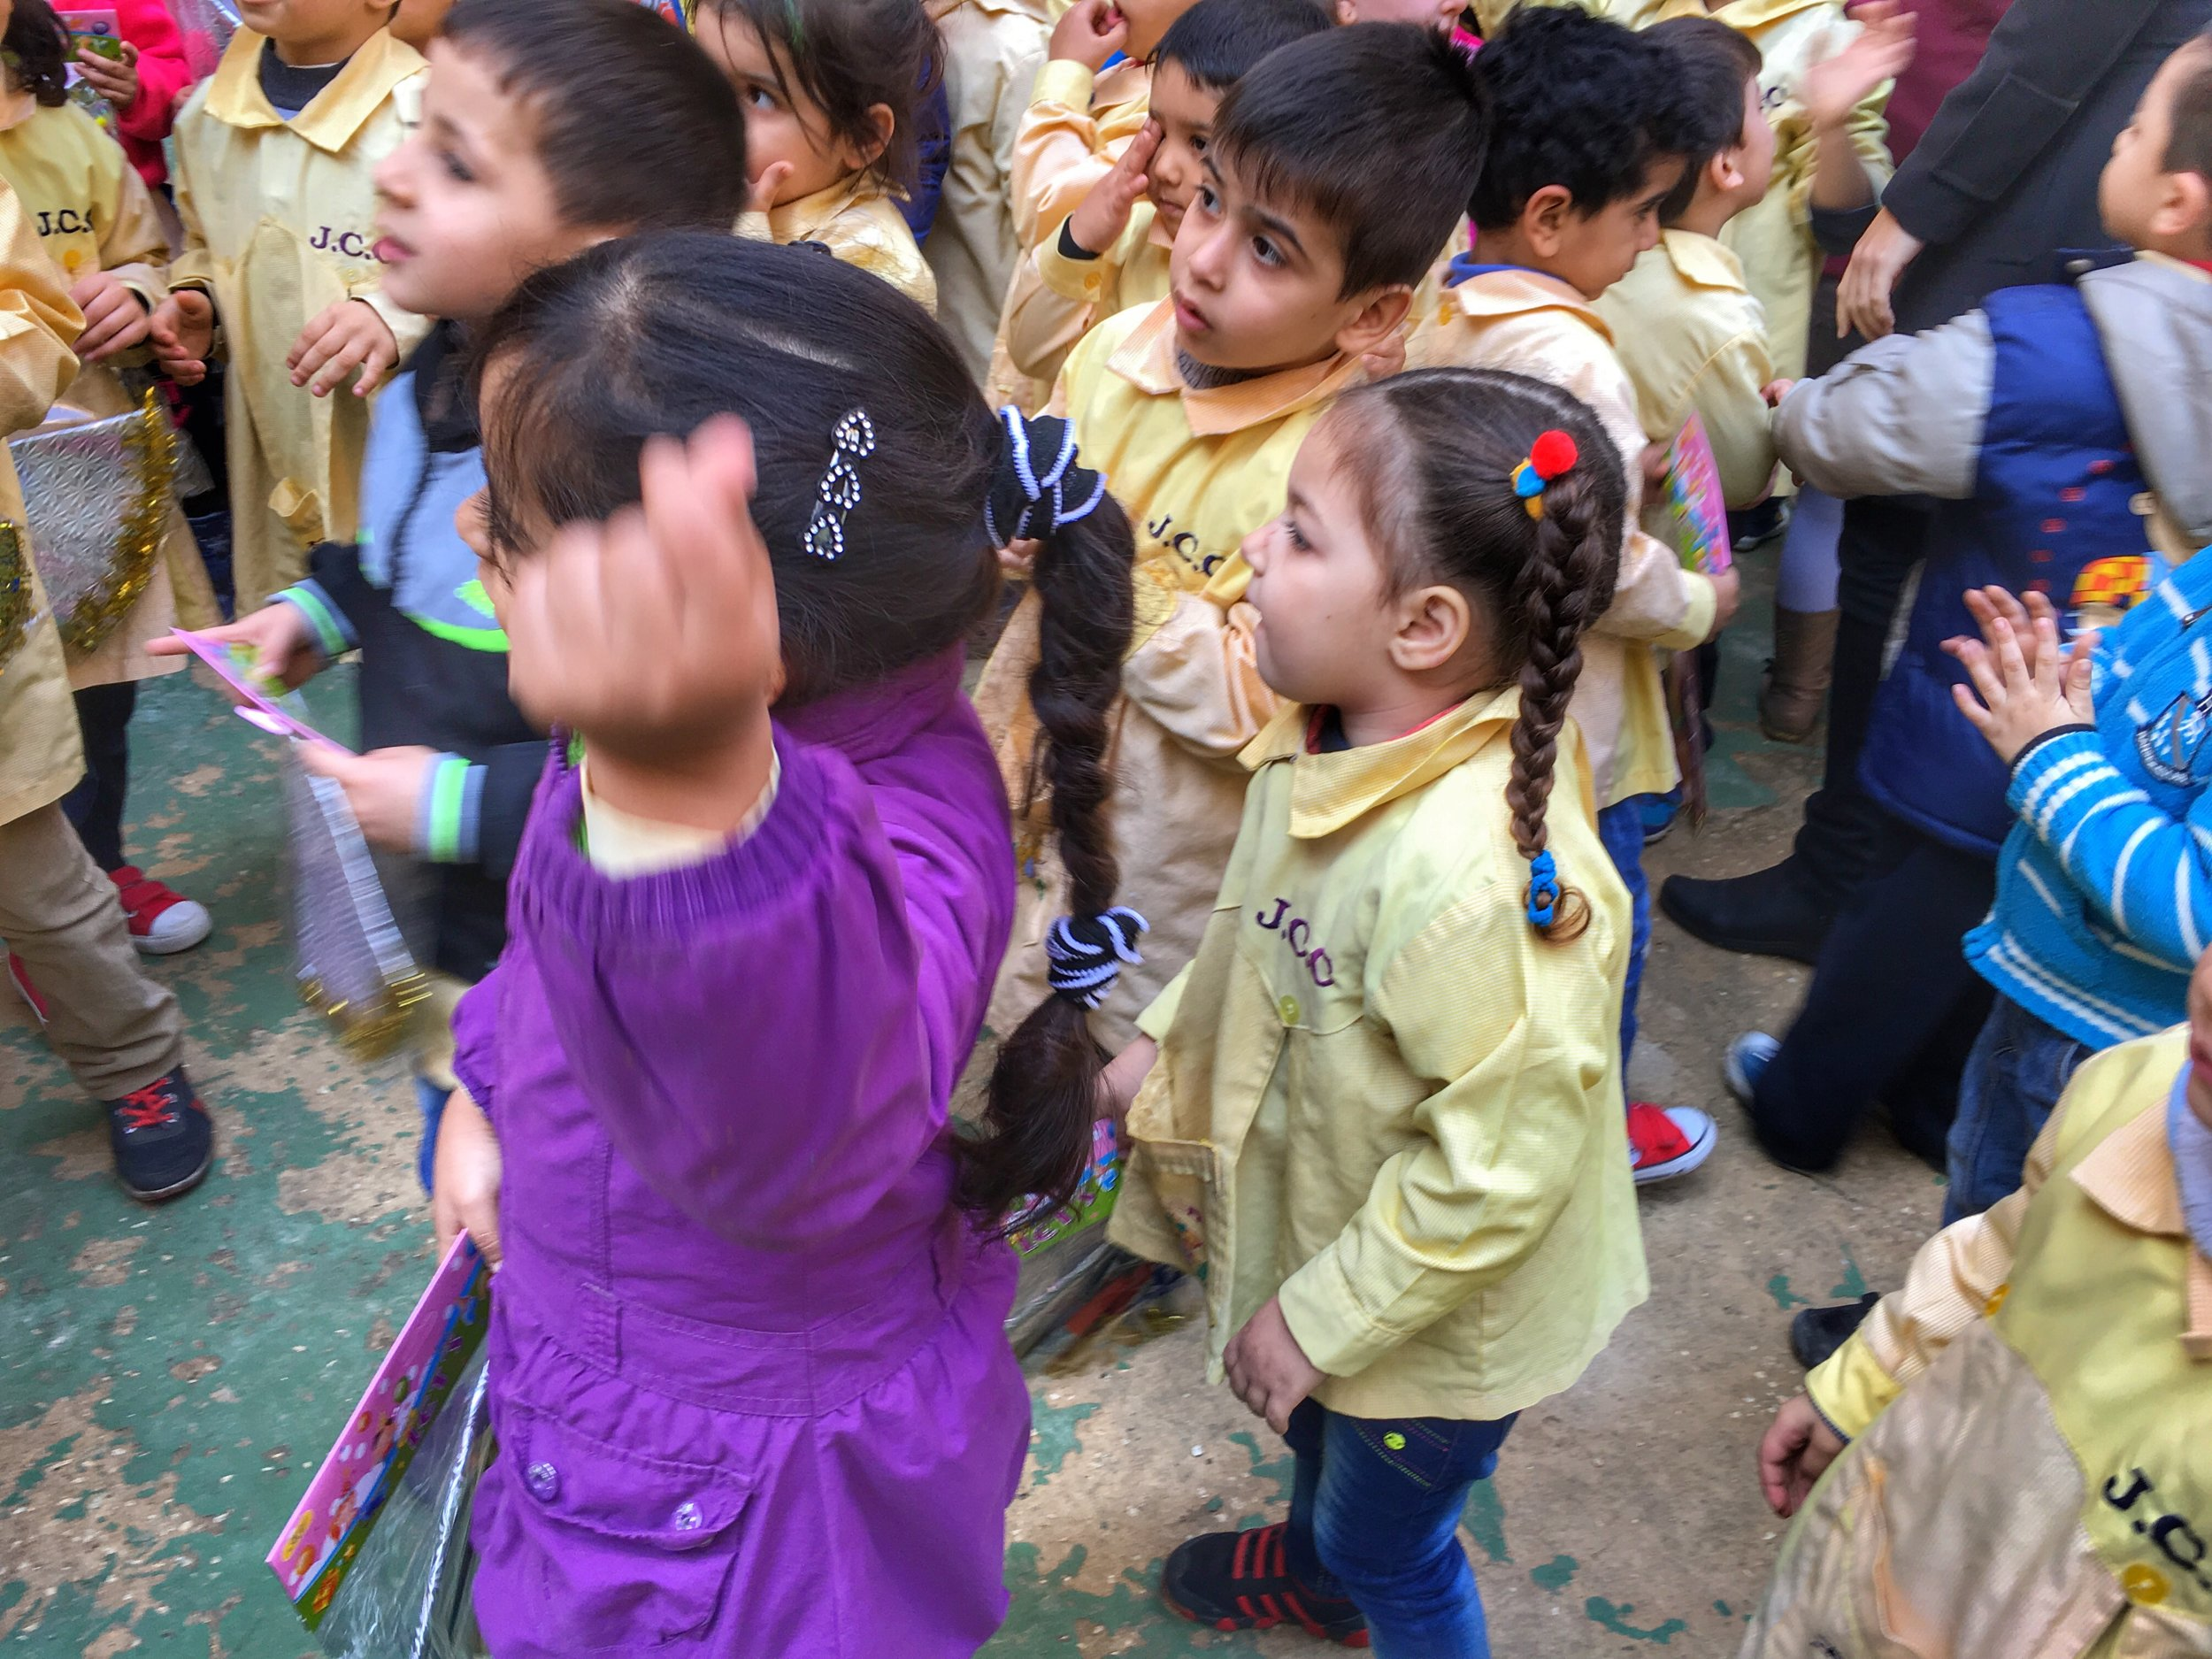 Palestinian refugee children dancing at a party at JCC Sabra Center in Sabra, Beirut, Lebanon. December 2015.